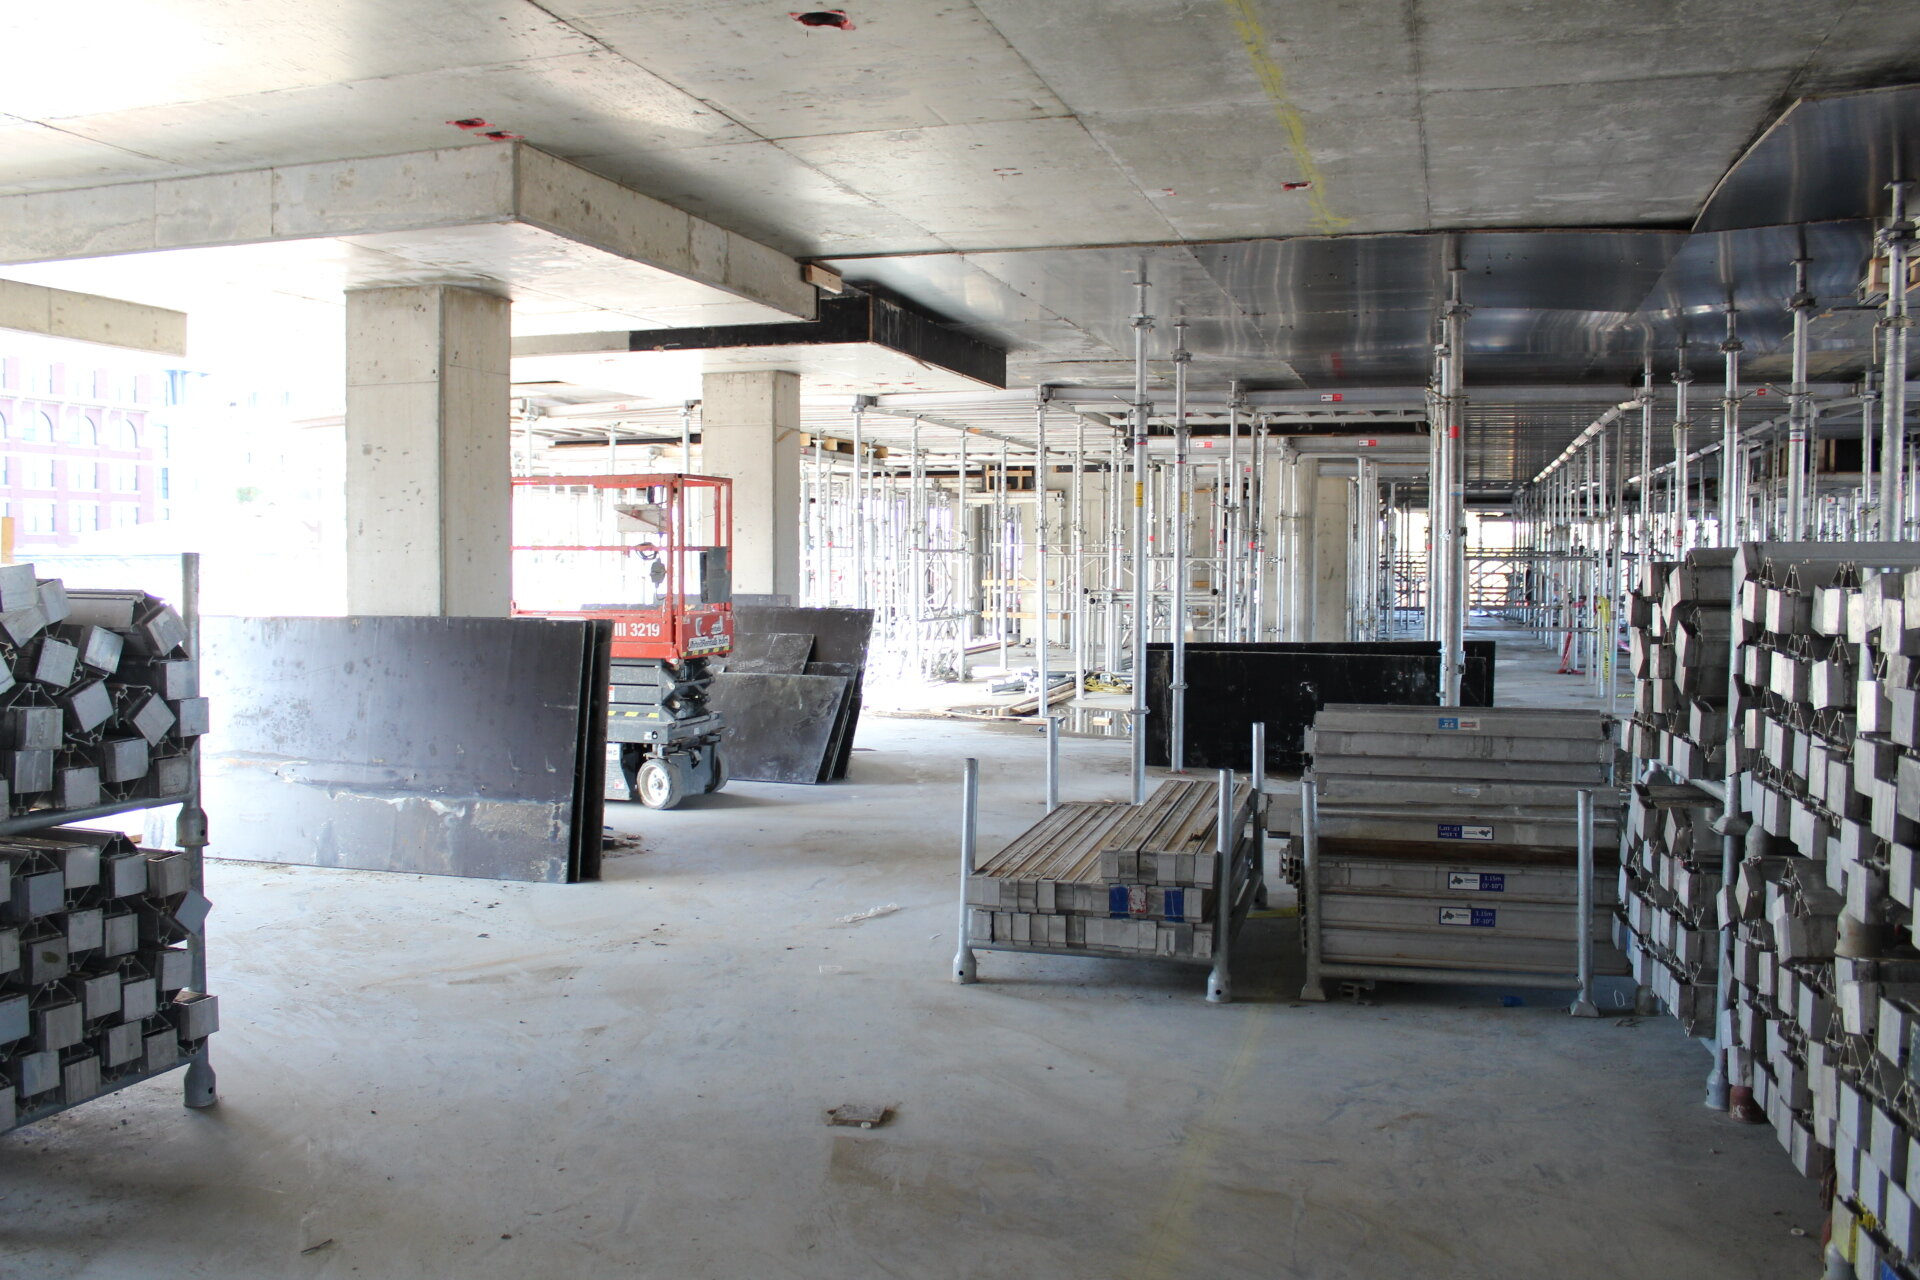 Looking northbound on the second floor into future residential spaces.